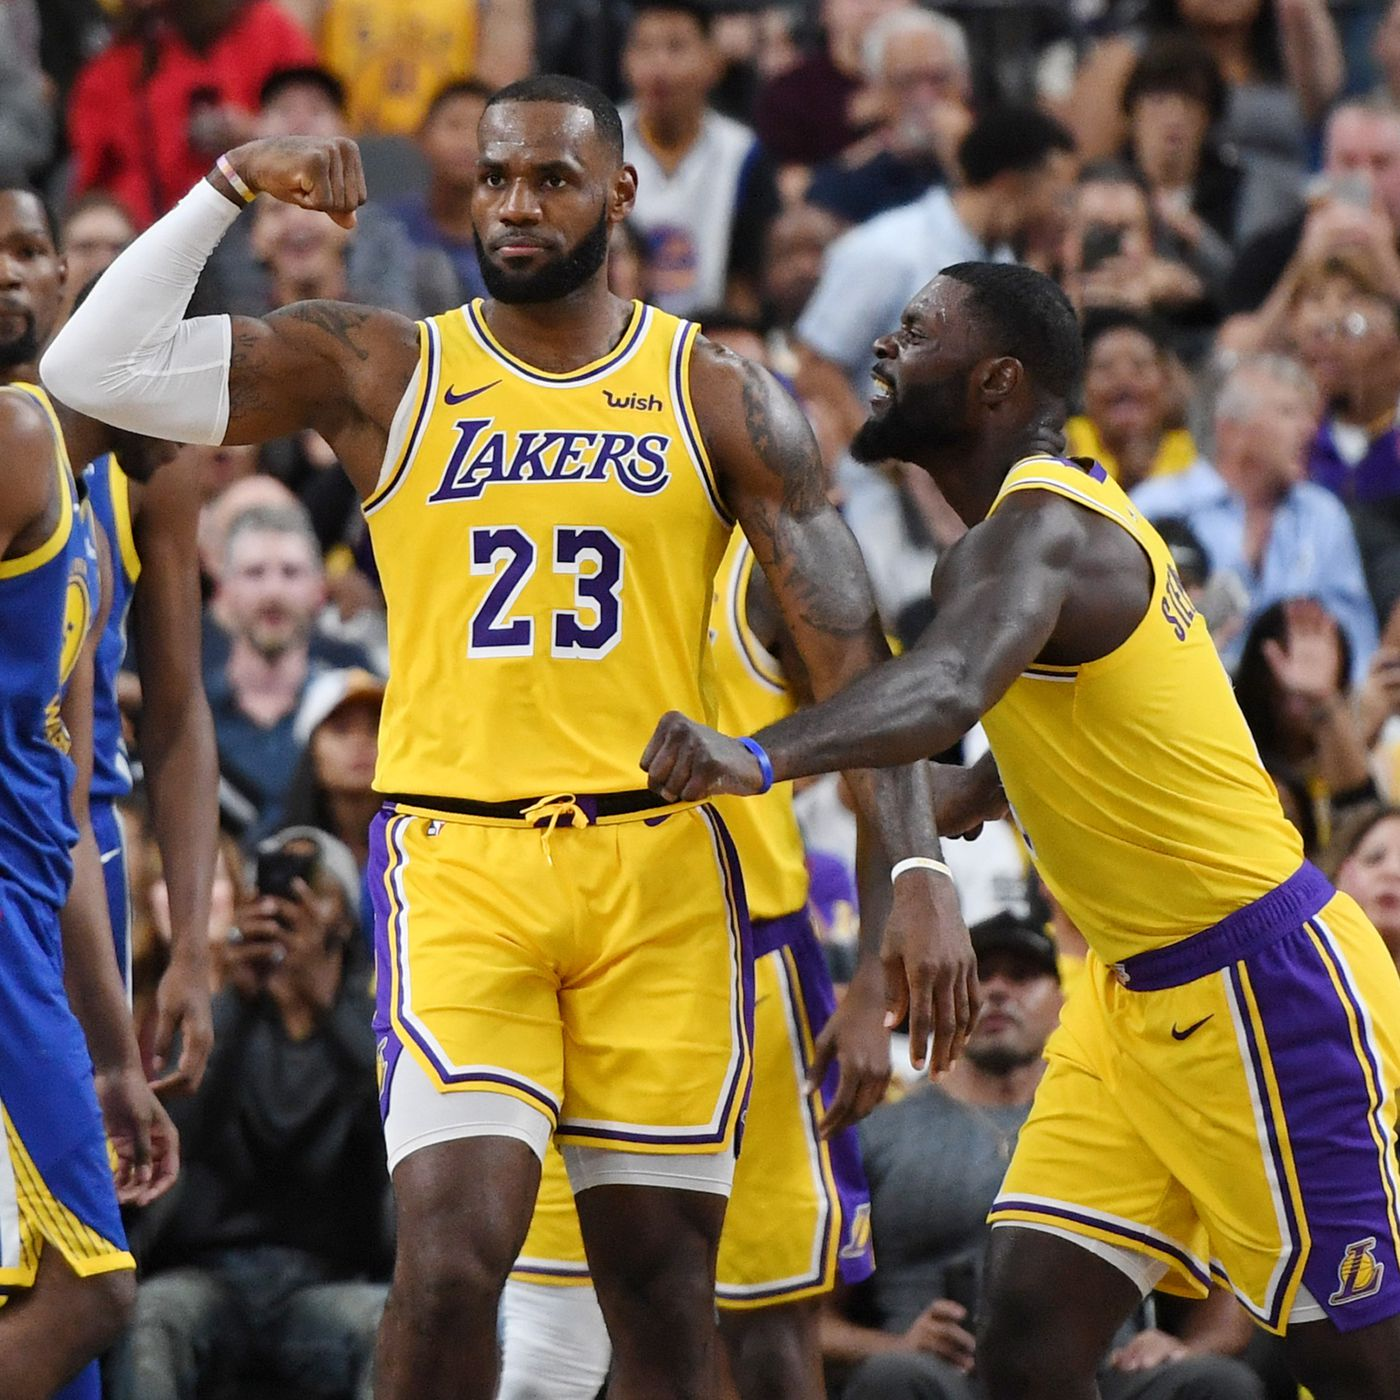 How will LeBron James mesh with the Lakers  young talent  - SBNation.com 163edeca6d